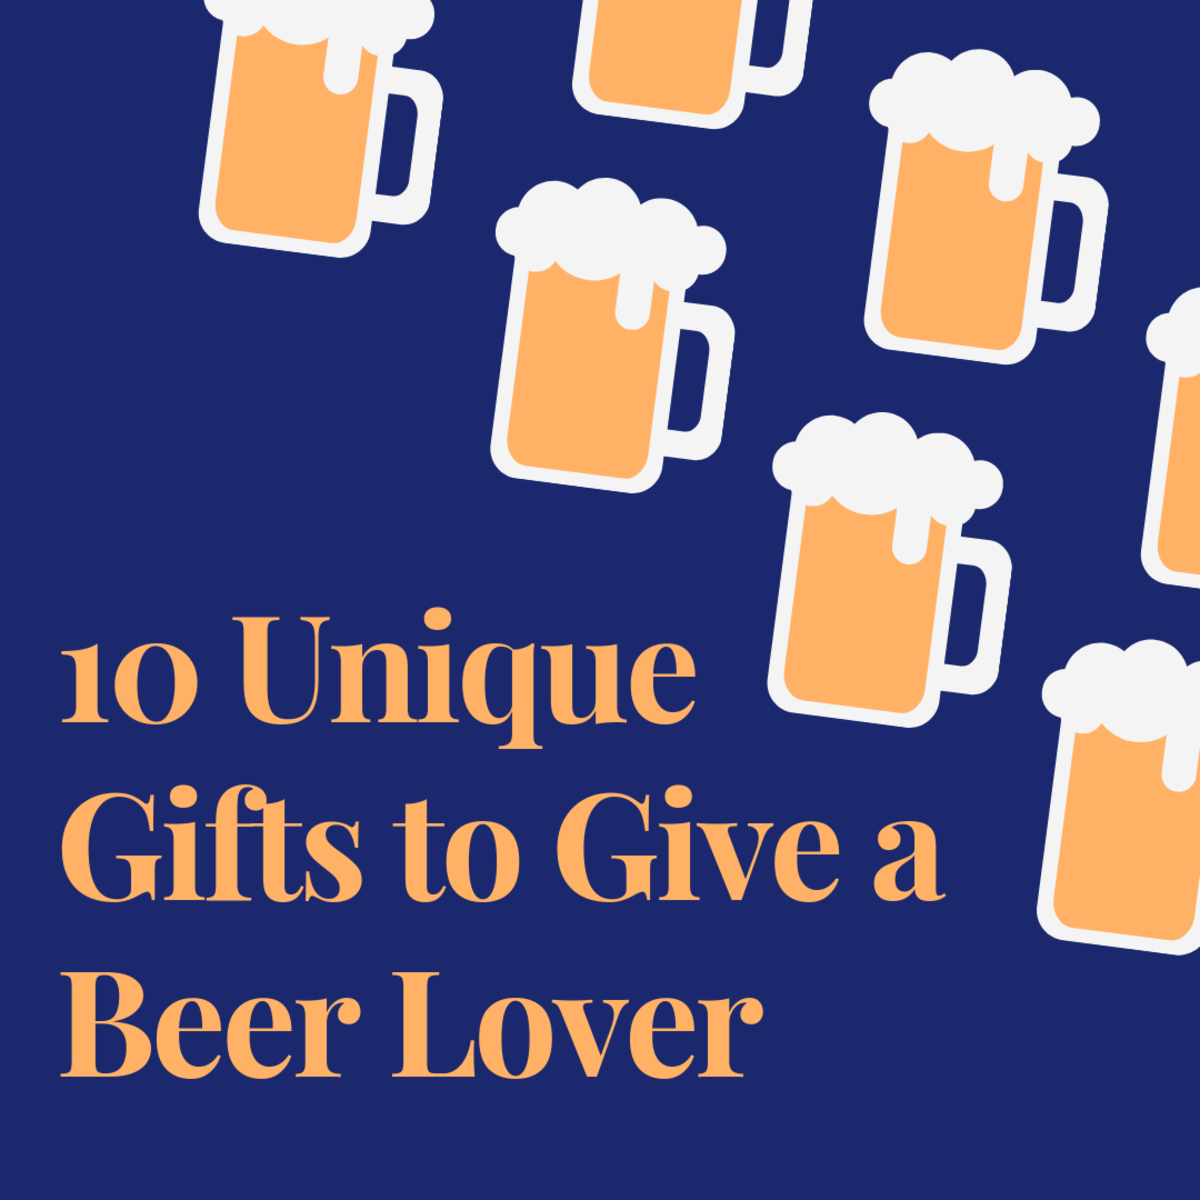 These gift ideas will help you find just the right present this holiday.